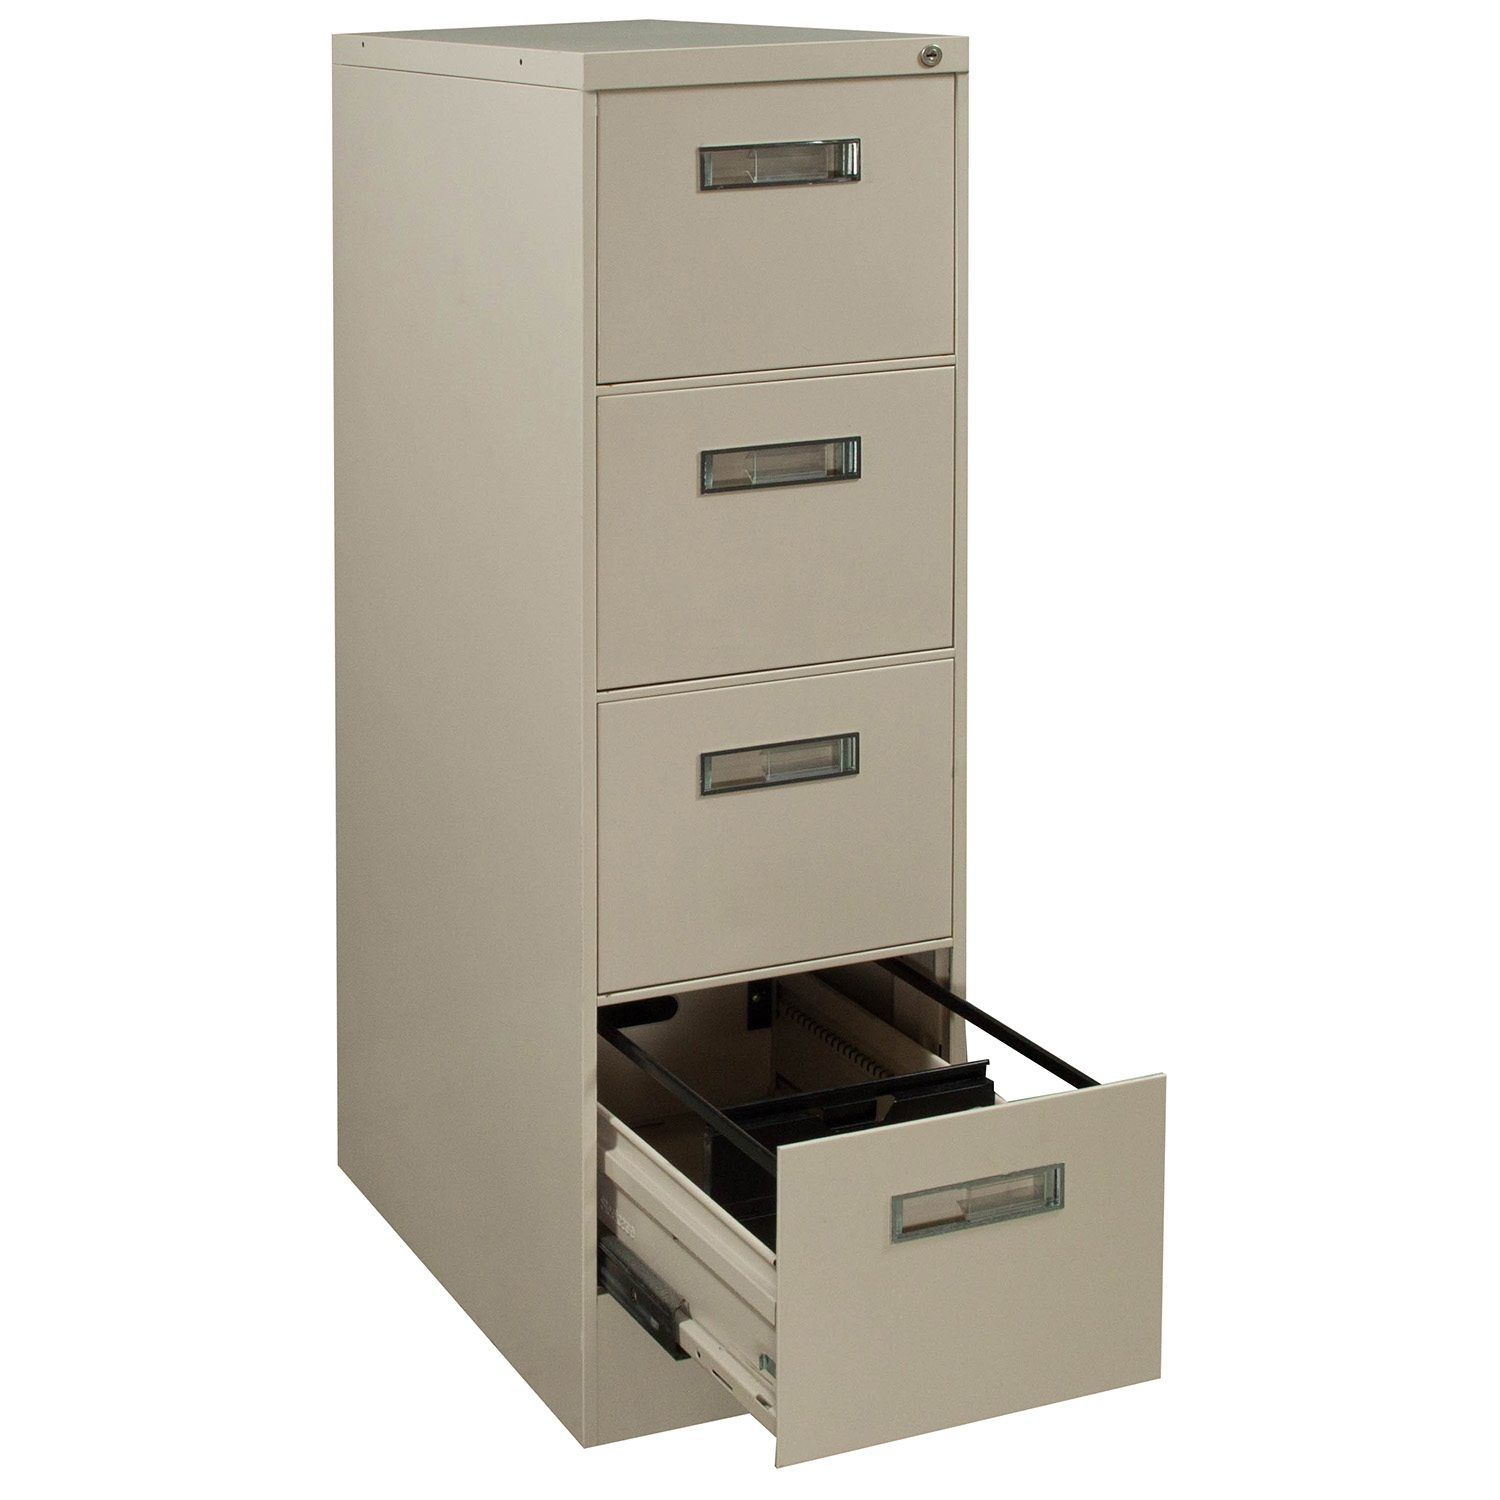 Steelcase 4 Drawer Vertical File Cabinets